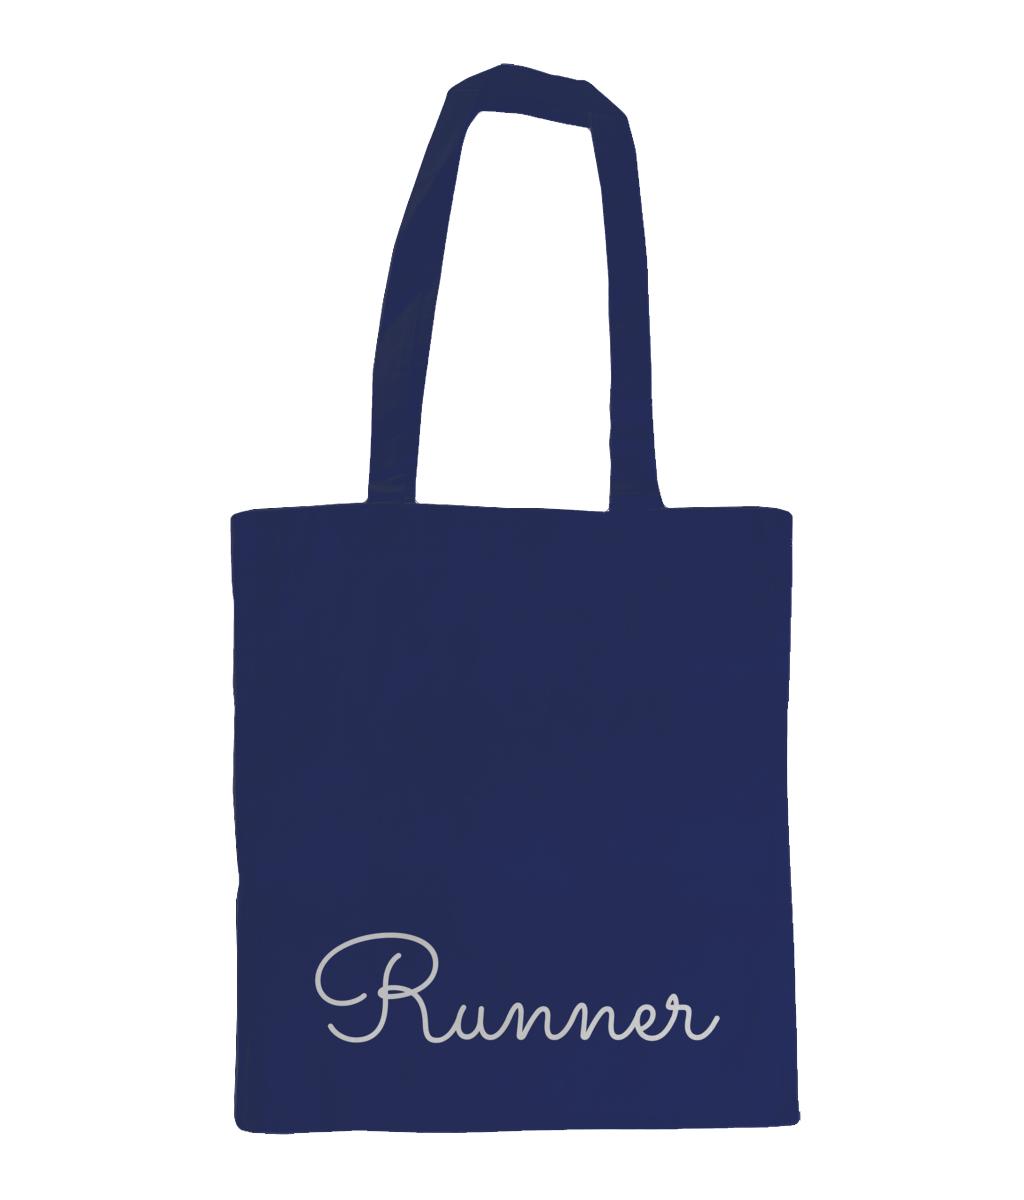 Runner Tote Bag - Track and Fit Club